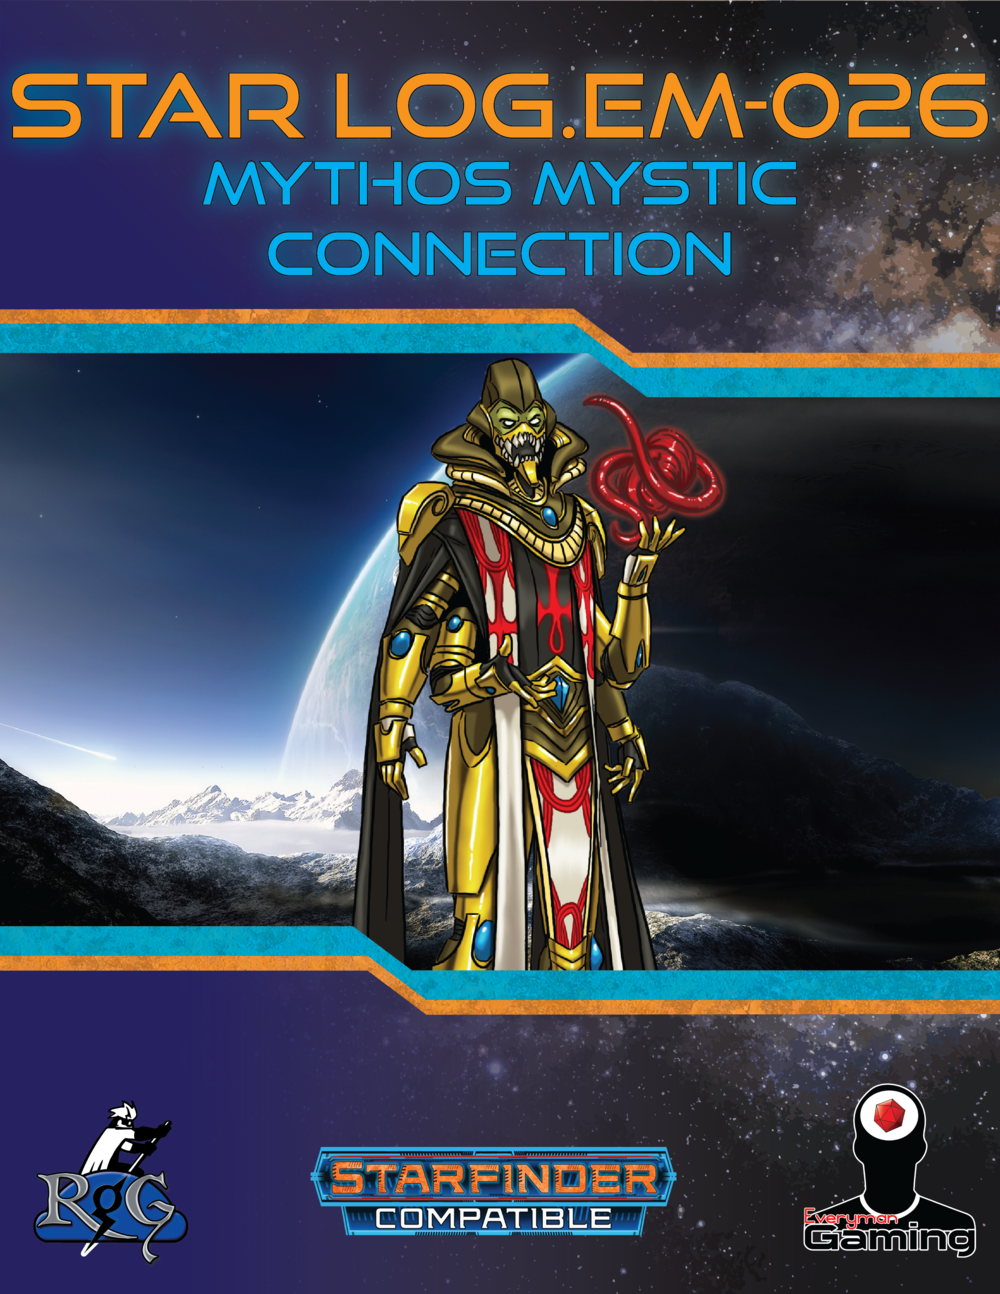 SF026 Mythos Mystic Connection.png